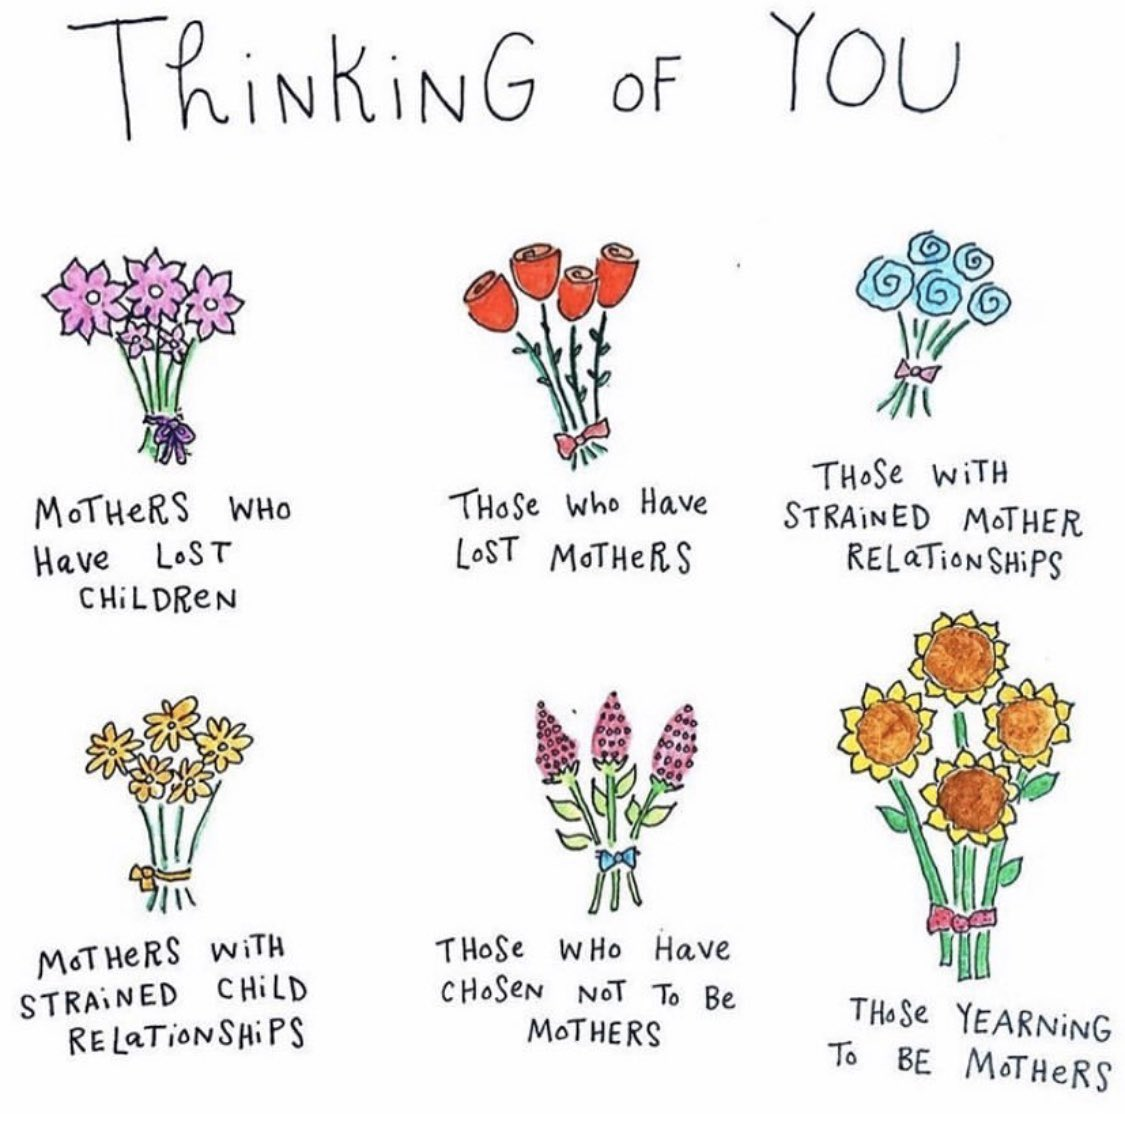 Mother's Day can be hard for some but is also an opportunity to spread love and connection. Make sure to cherish both mothers and children alike. The currency of this holiday is consideration, and practicing that empathy on all of your loved ones is important. Art @bymariandrew